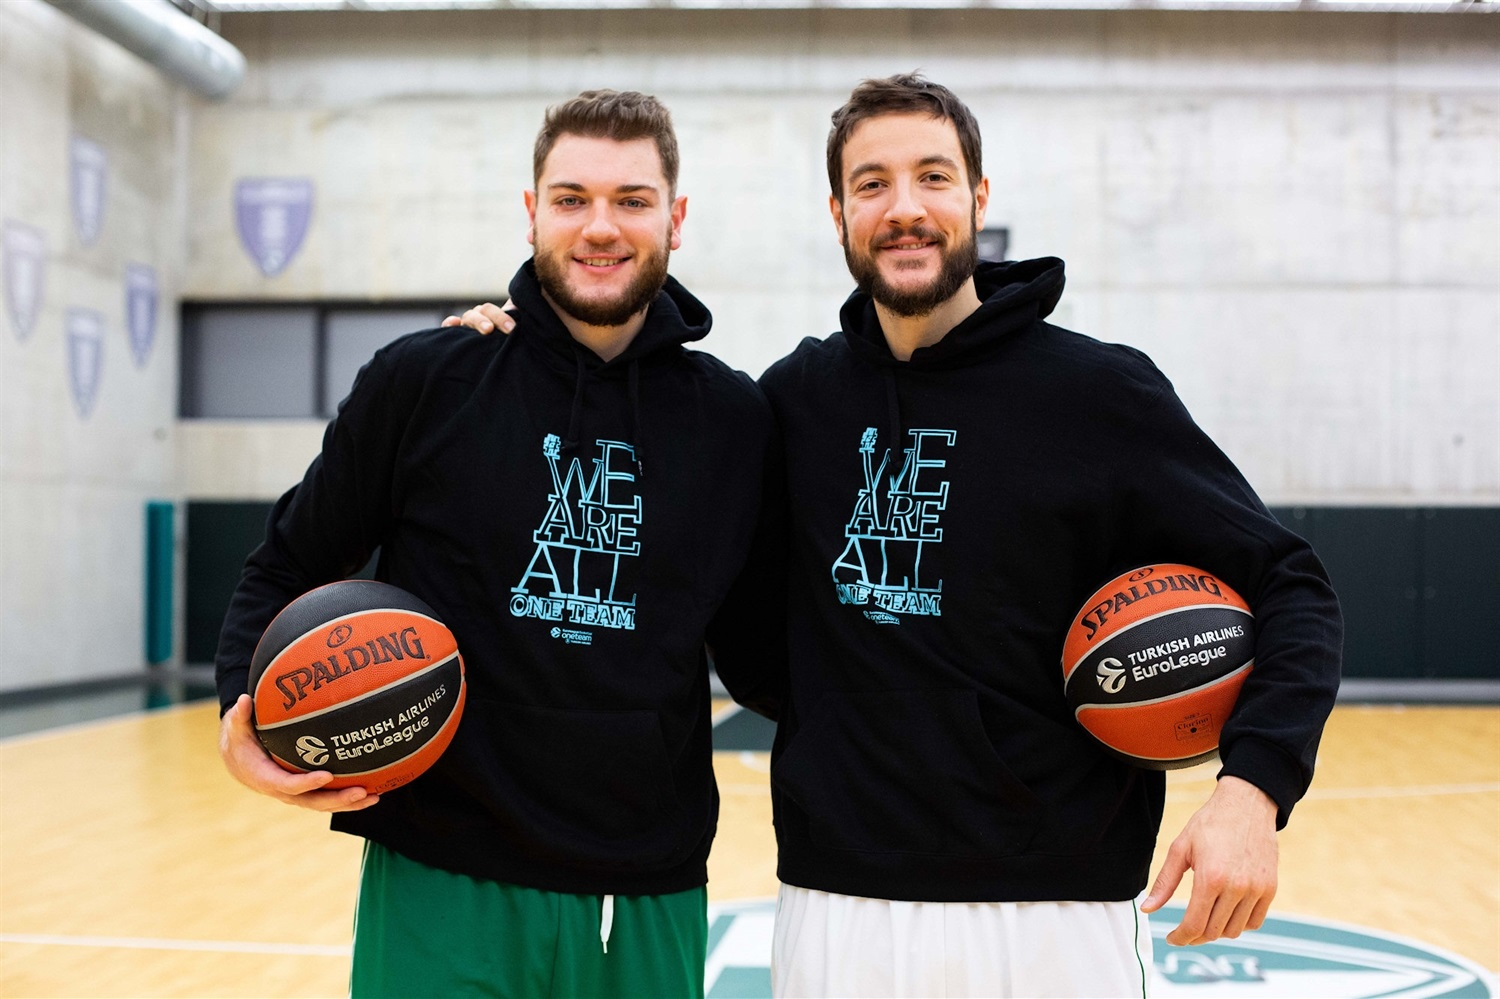 Martinas Geben and Joffrey Lauvergne - Zalgiris Kaunas - We are all one team - EB20